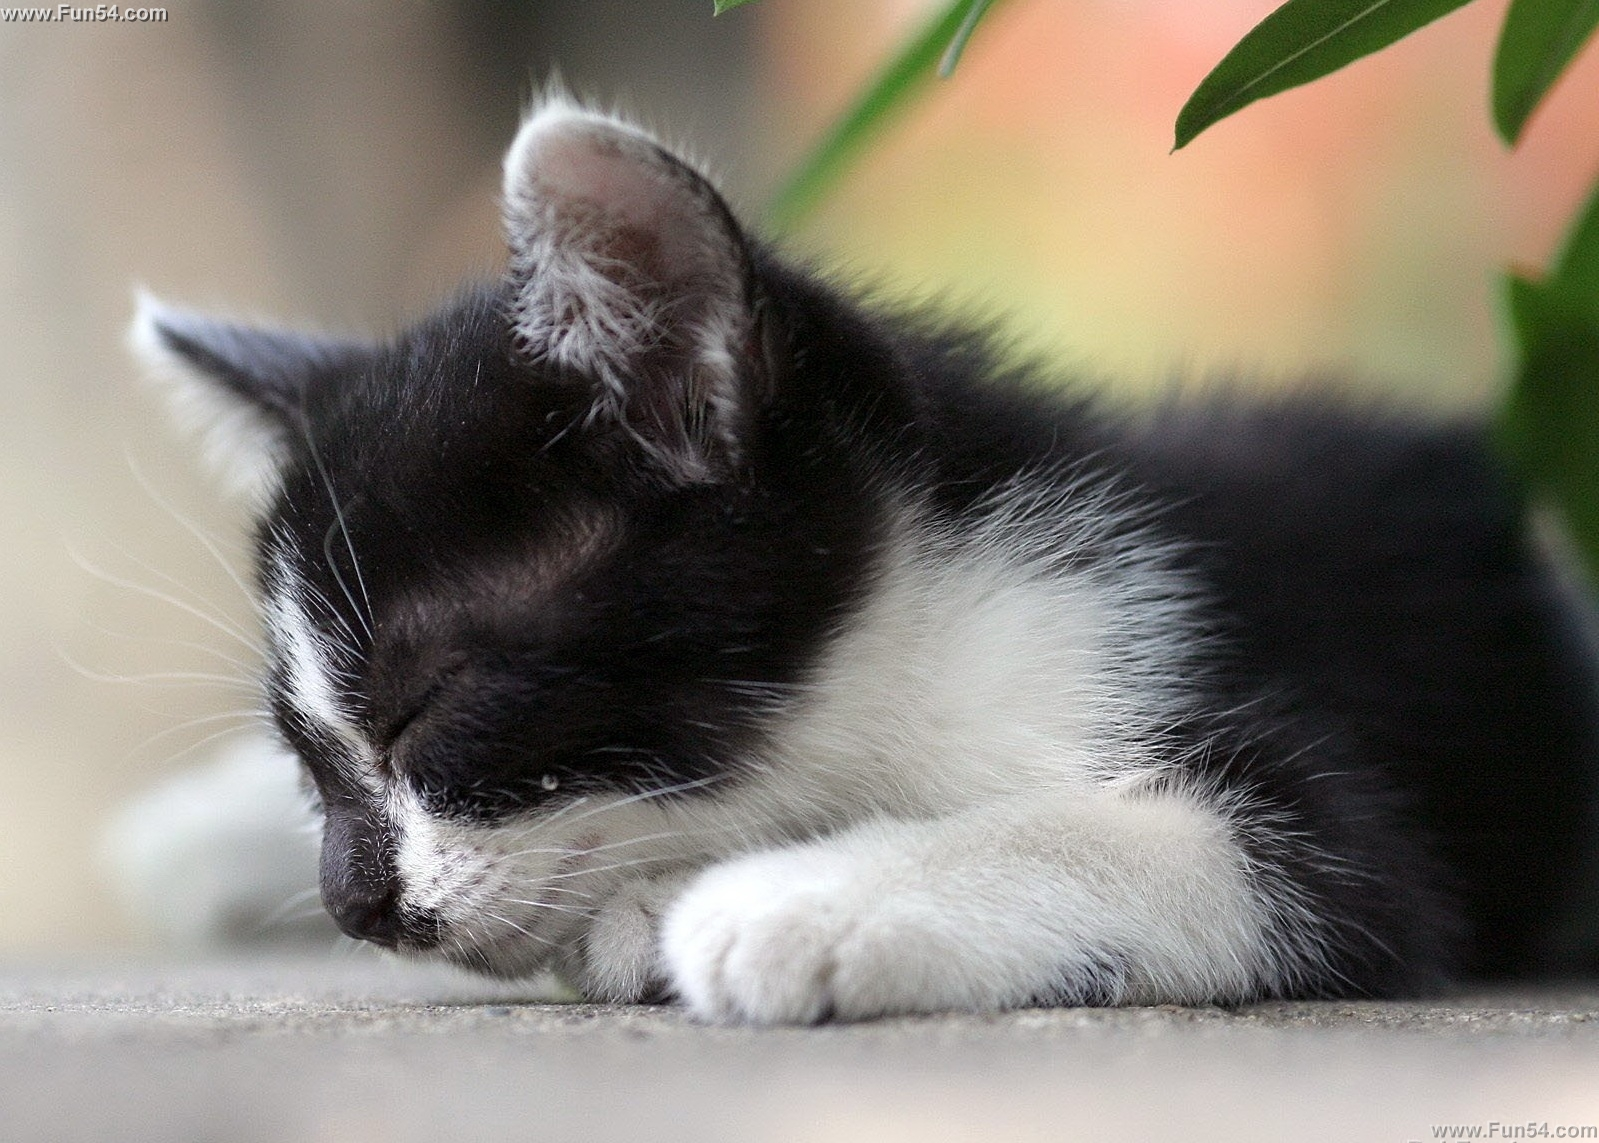 Cute Black White Cat Sleeping on the Ground Wallpaper 1599x1143